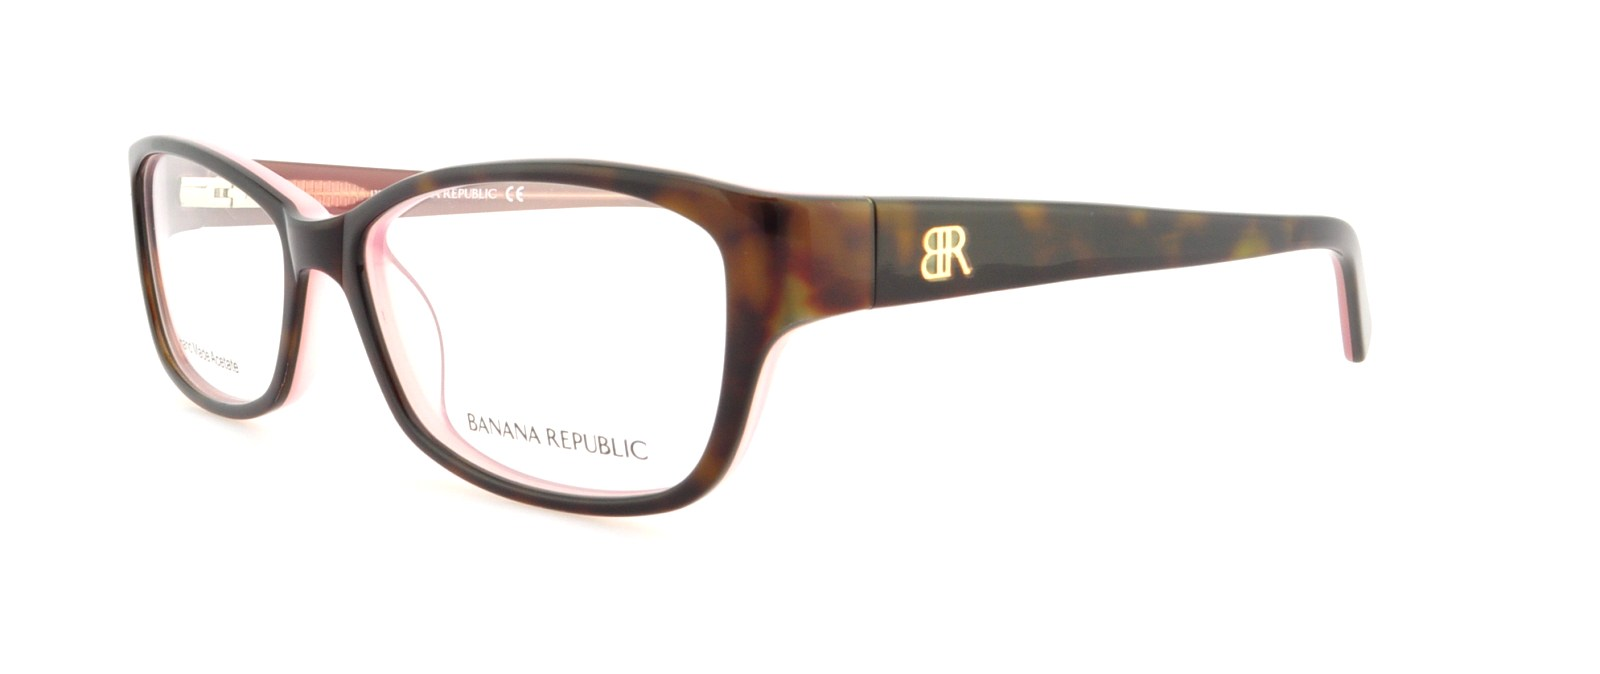 Banana Republic Eyeglass Frames - The Best Frames Of 2018